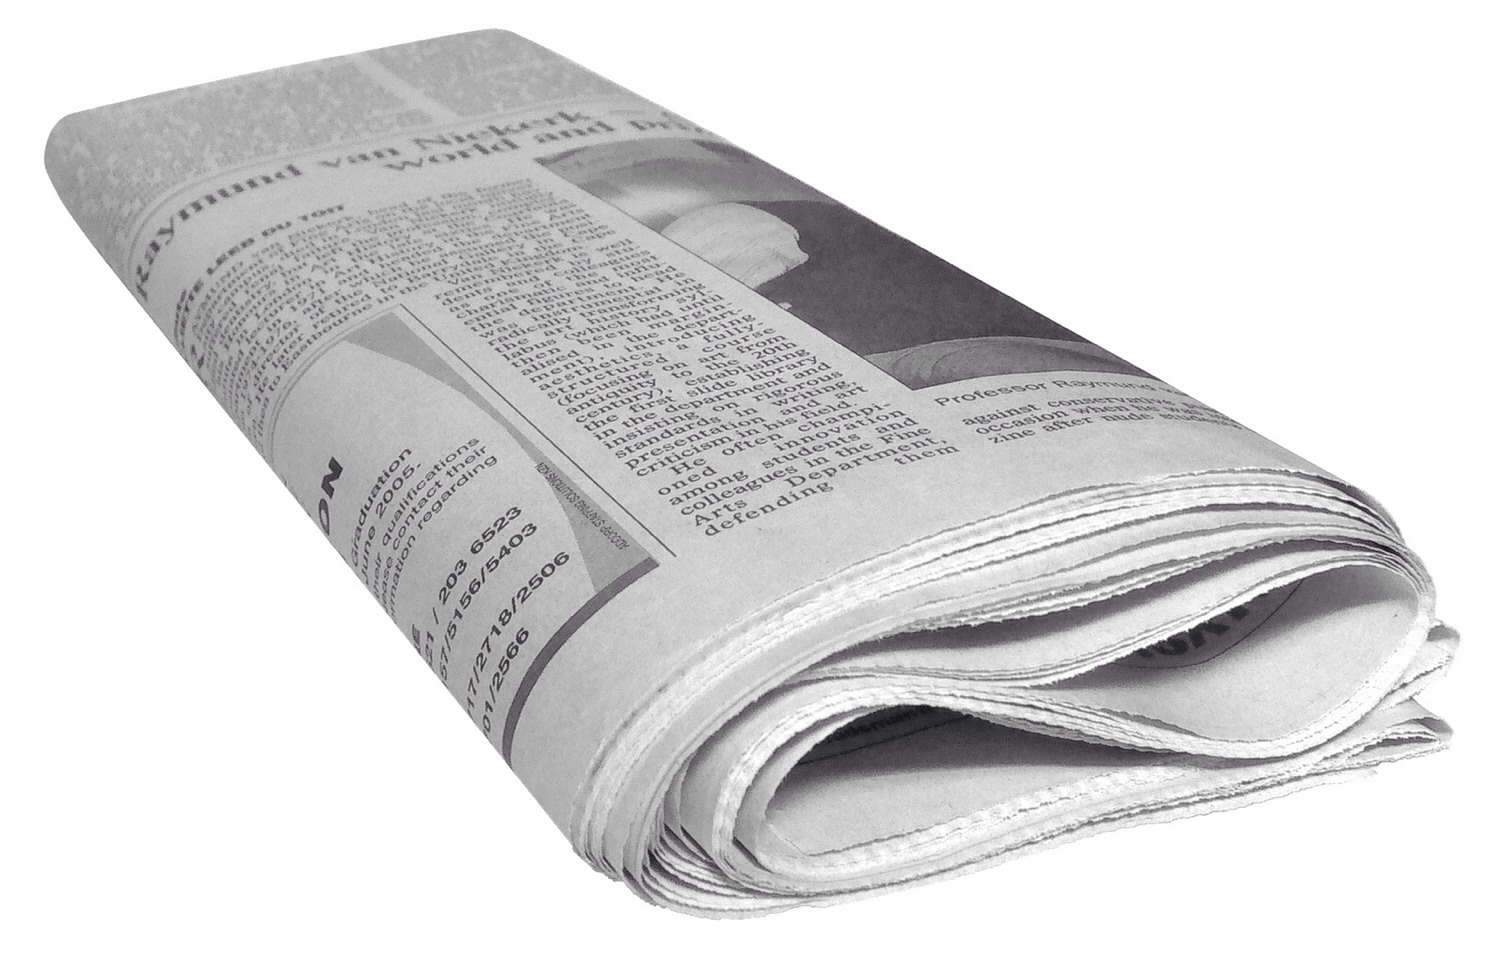 Use old newspaper to line the bottom of your trash can. It absorbs the leaks and odors and saves you from having to clean out your trash can everyday!